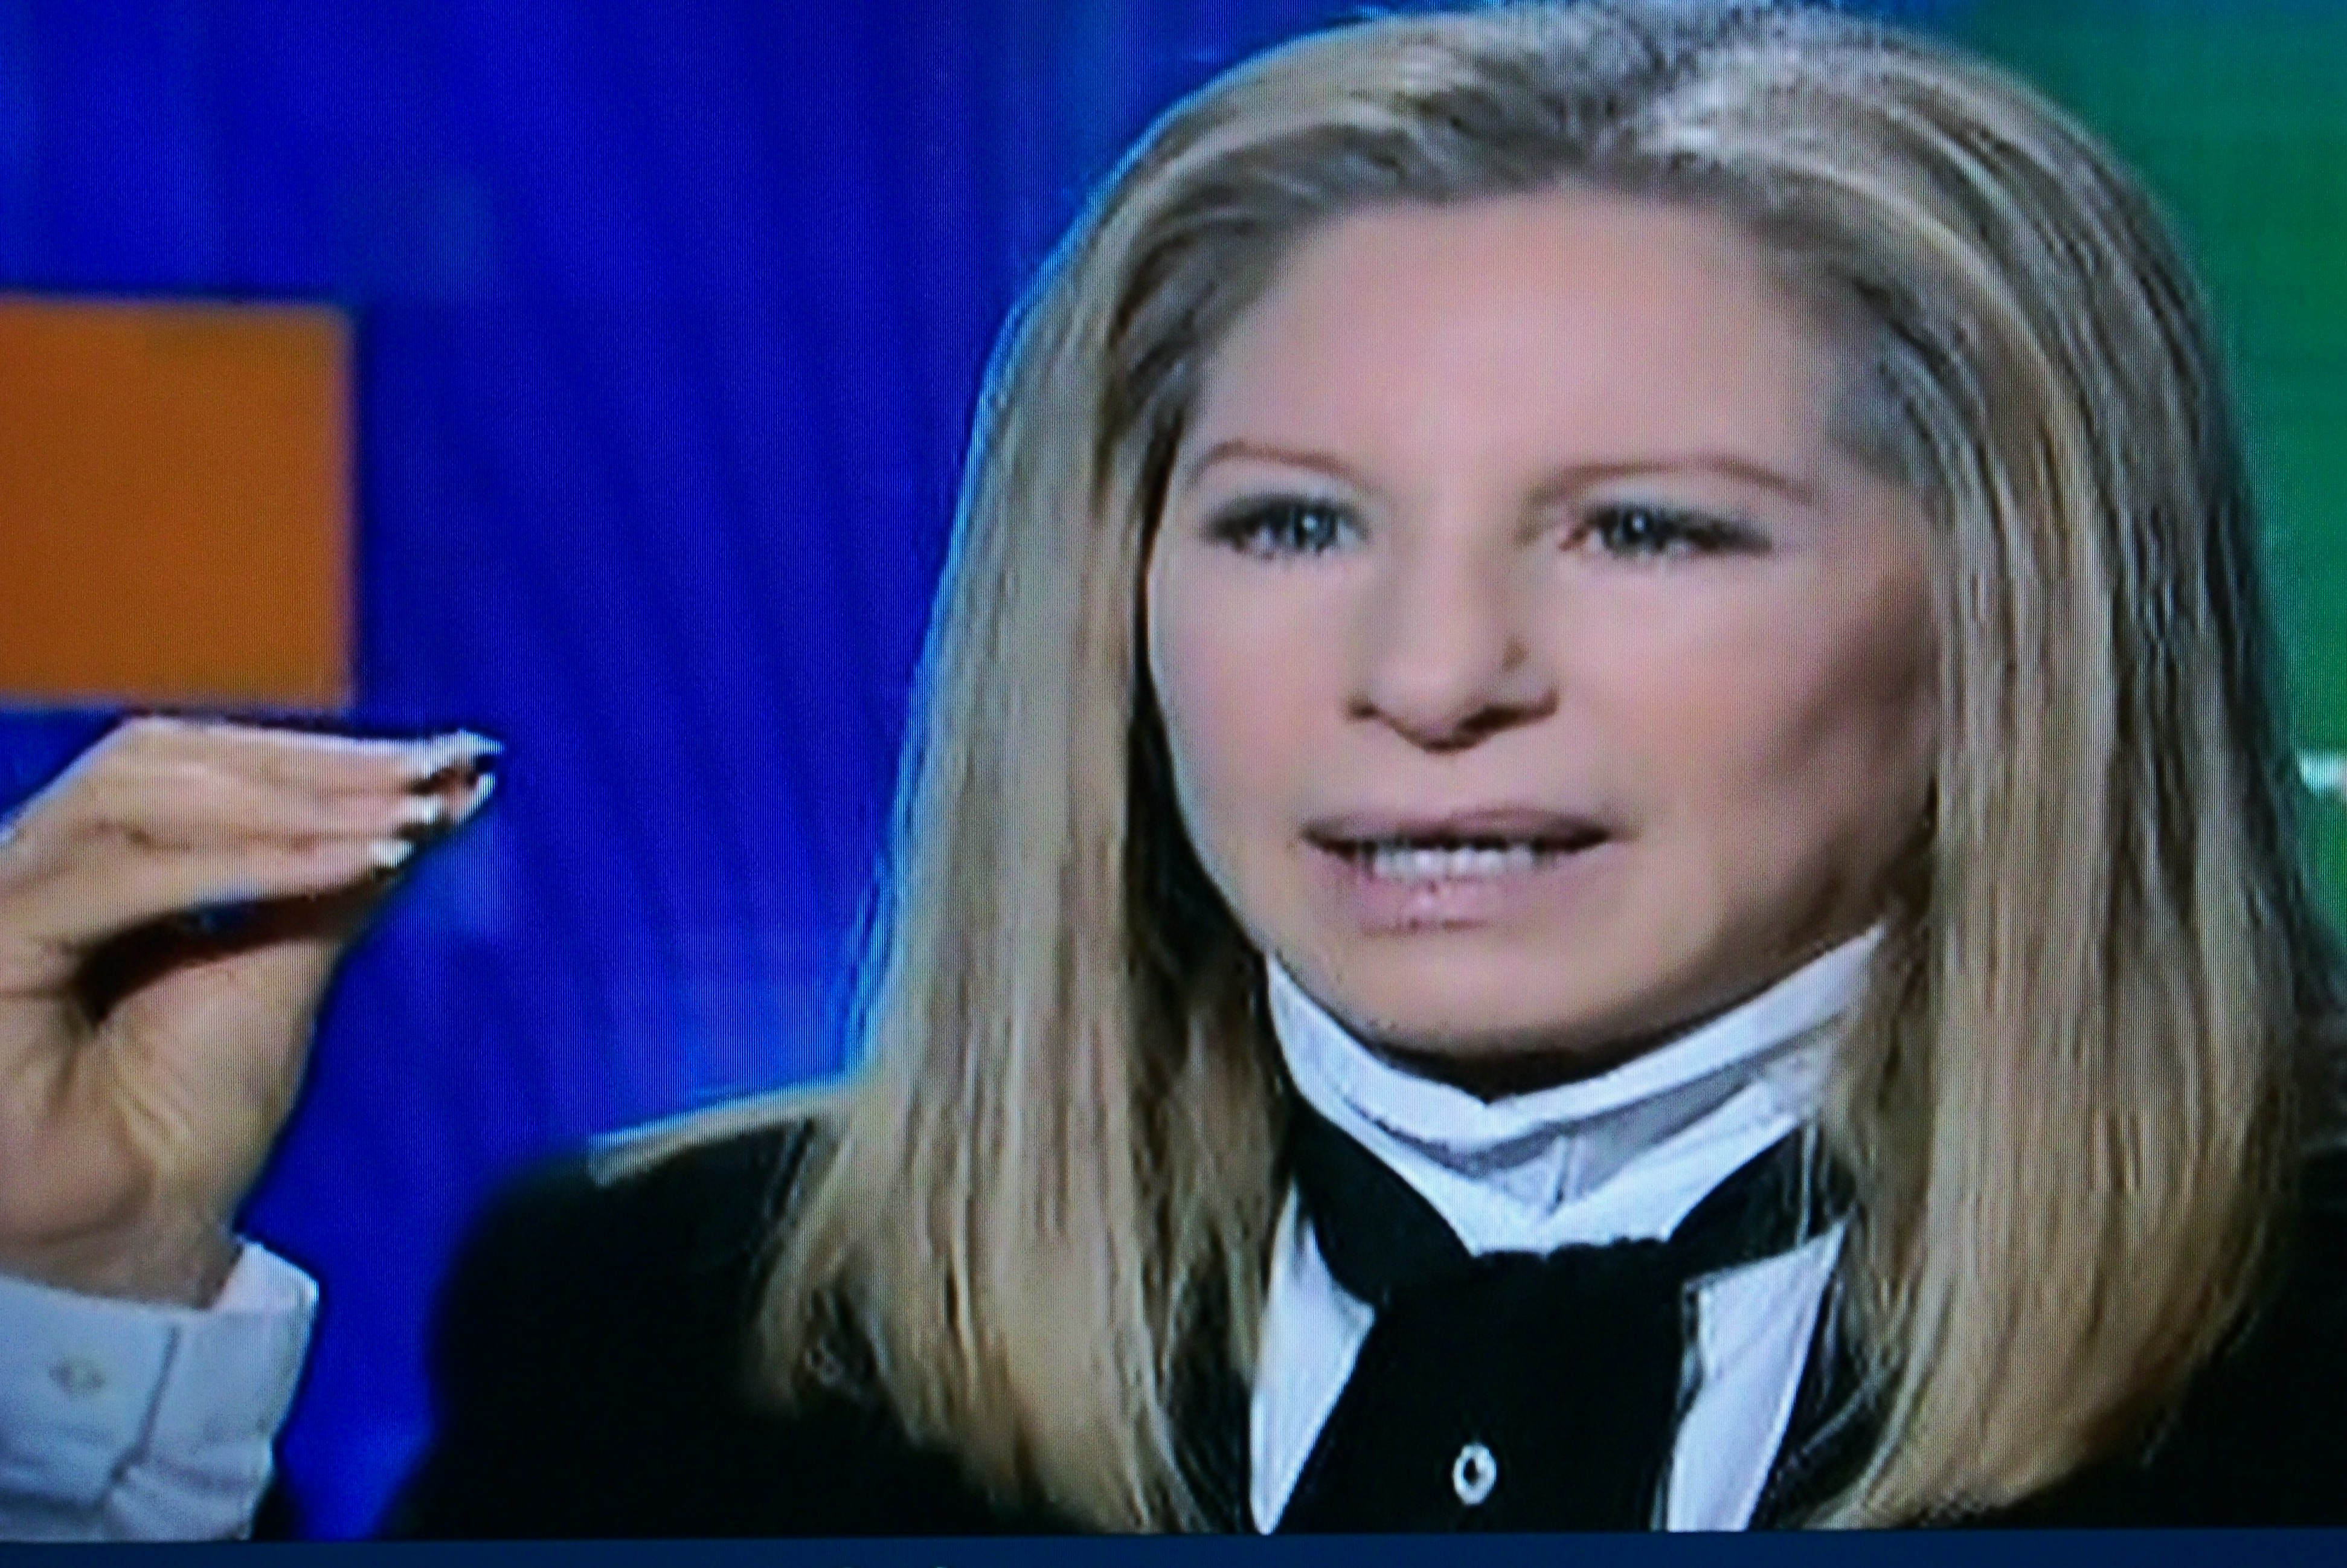 Streisand on CNN